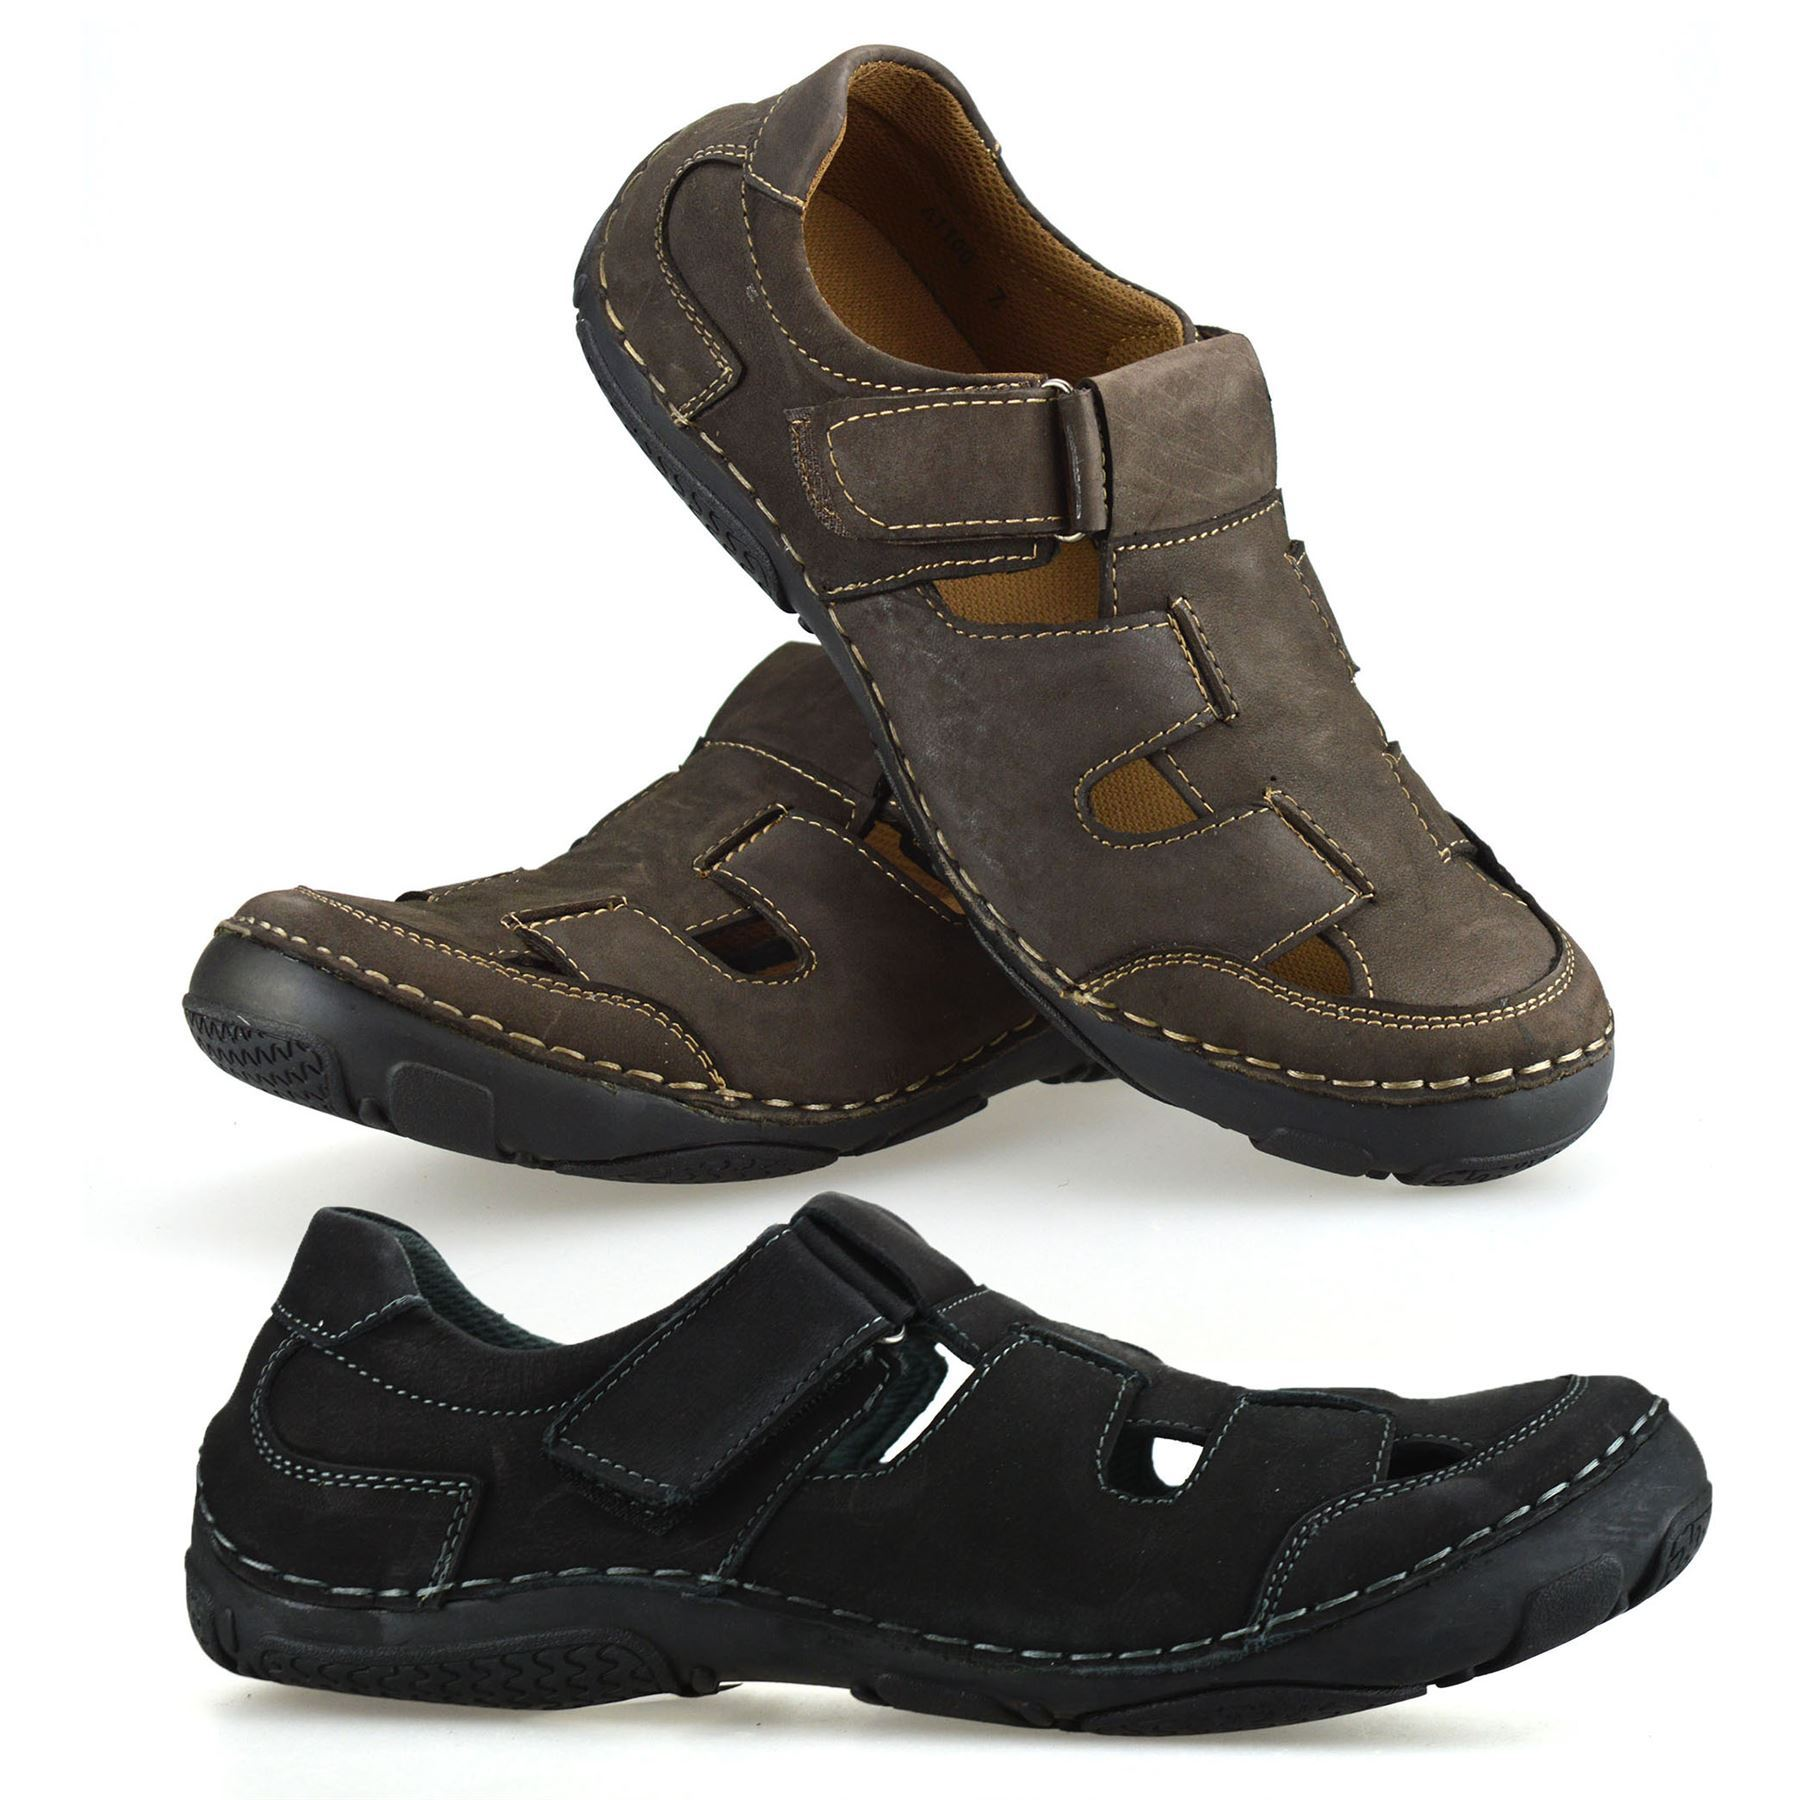 Mens Faux Leather Touch Strap Summer Beach Mules Gladiator Sandals Shoes Size